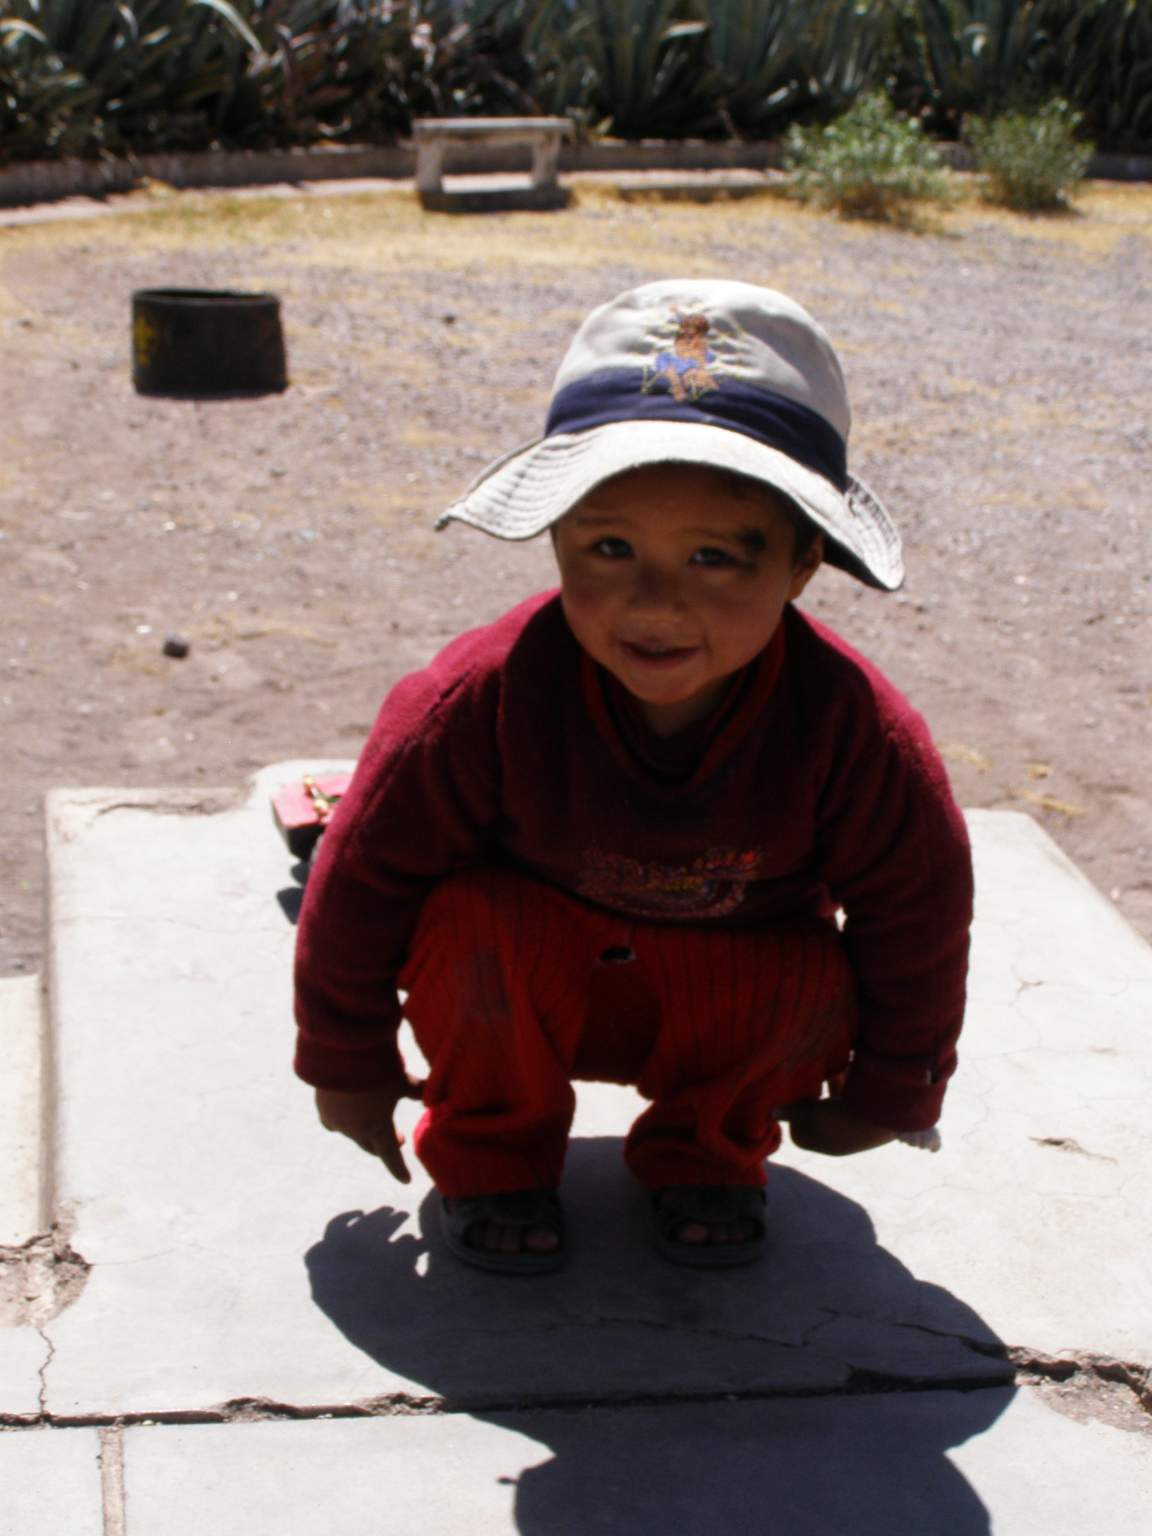 cuzco senior personals From andean peaks to desert dunes: an active family adventure in peru grandparent  which also features detailed insets of lima and cuzco and even a site plan of.